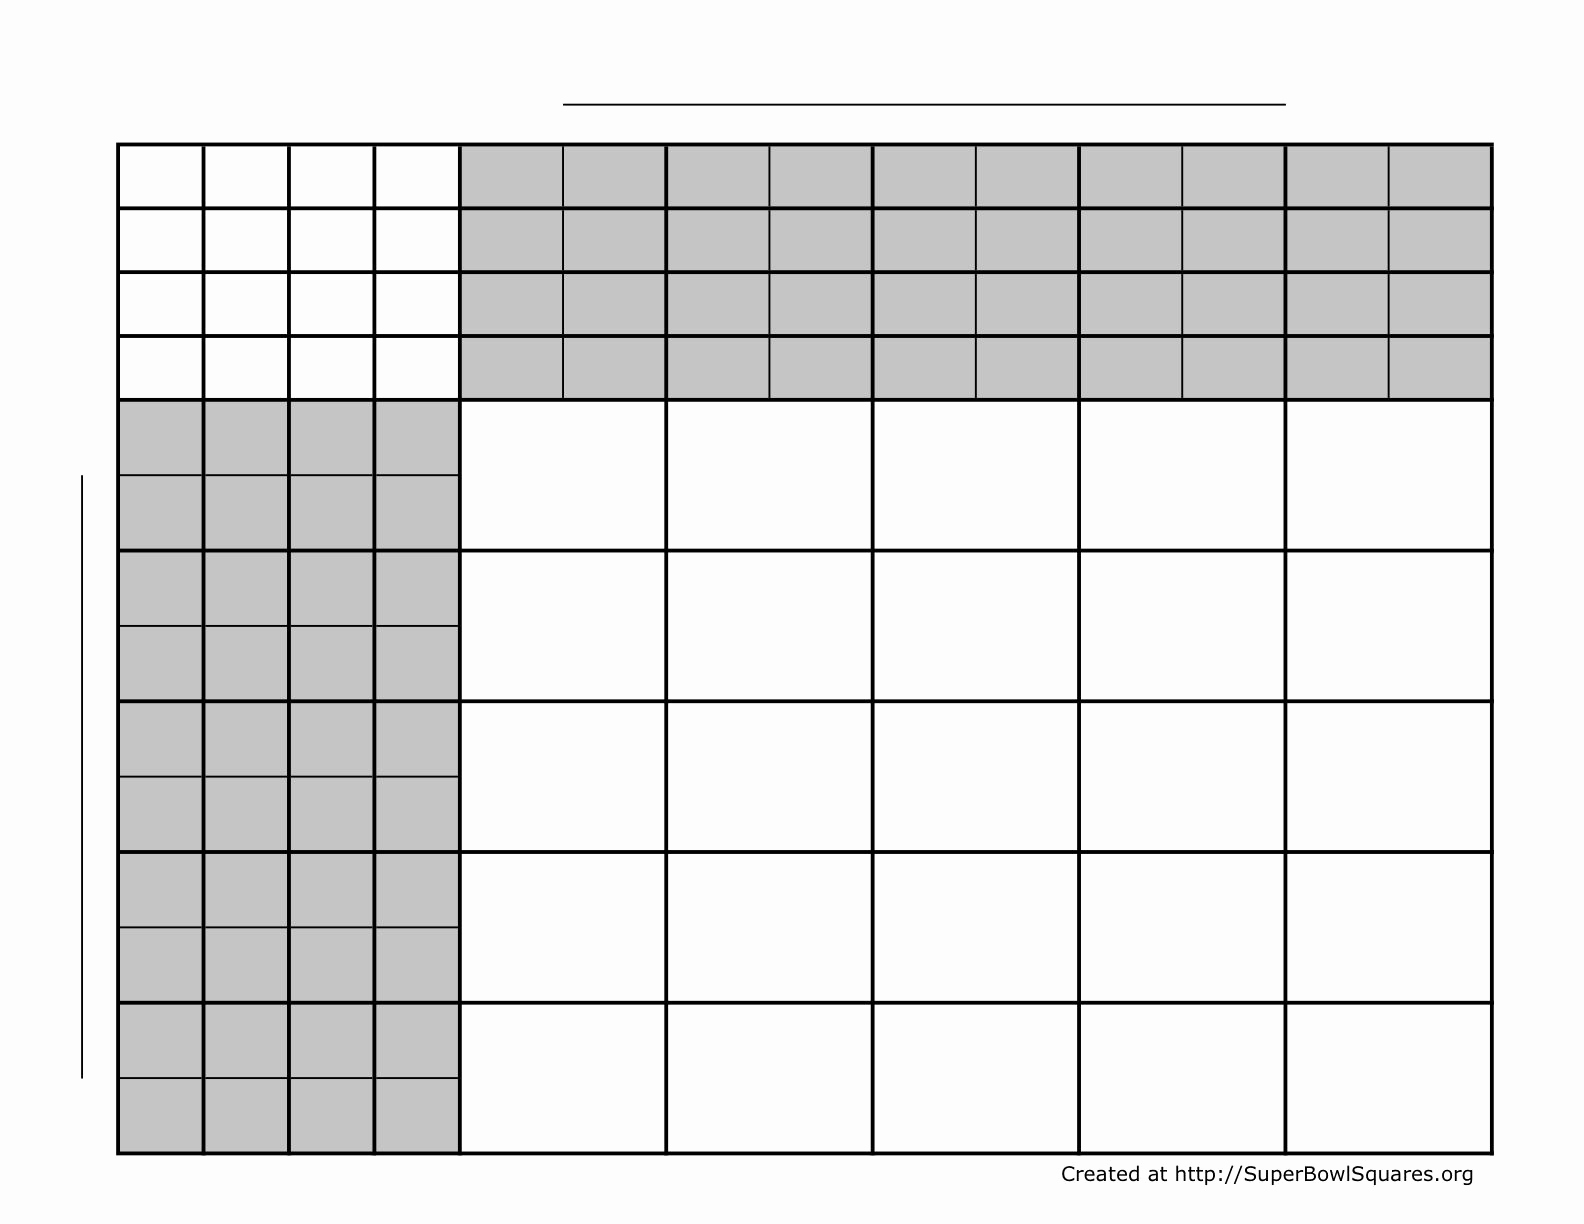 Super Bowl Squares Template Excel Unique Super Bowl Squares Template Excel Template Design